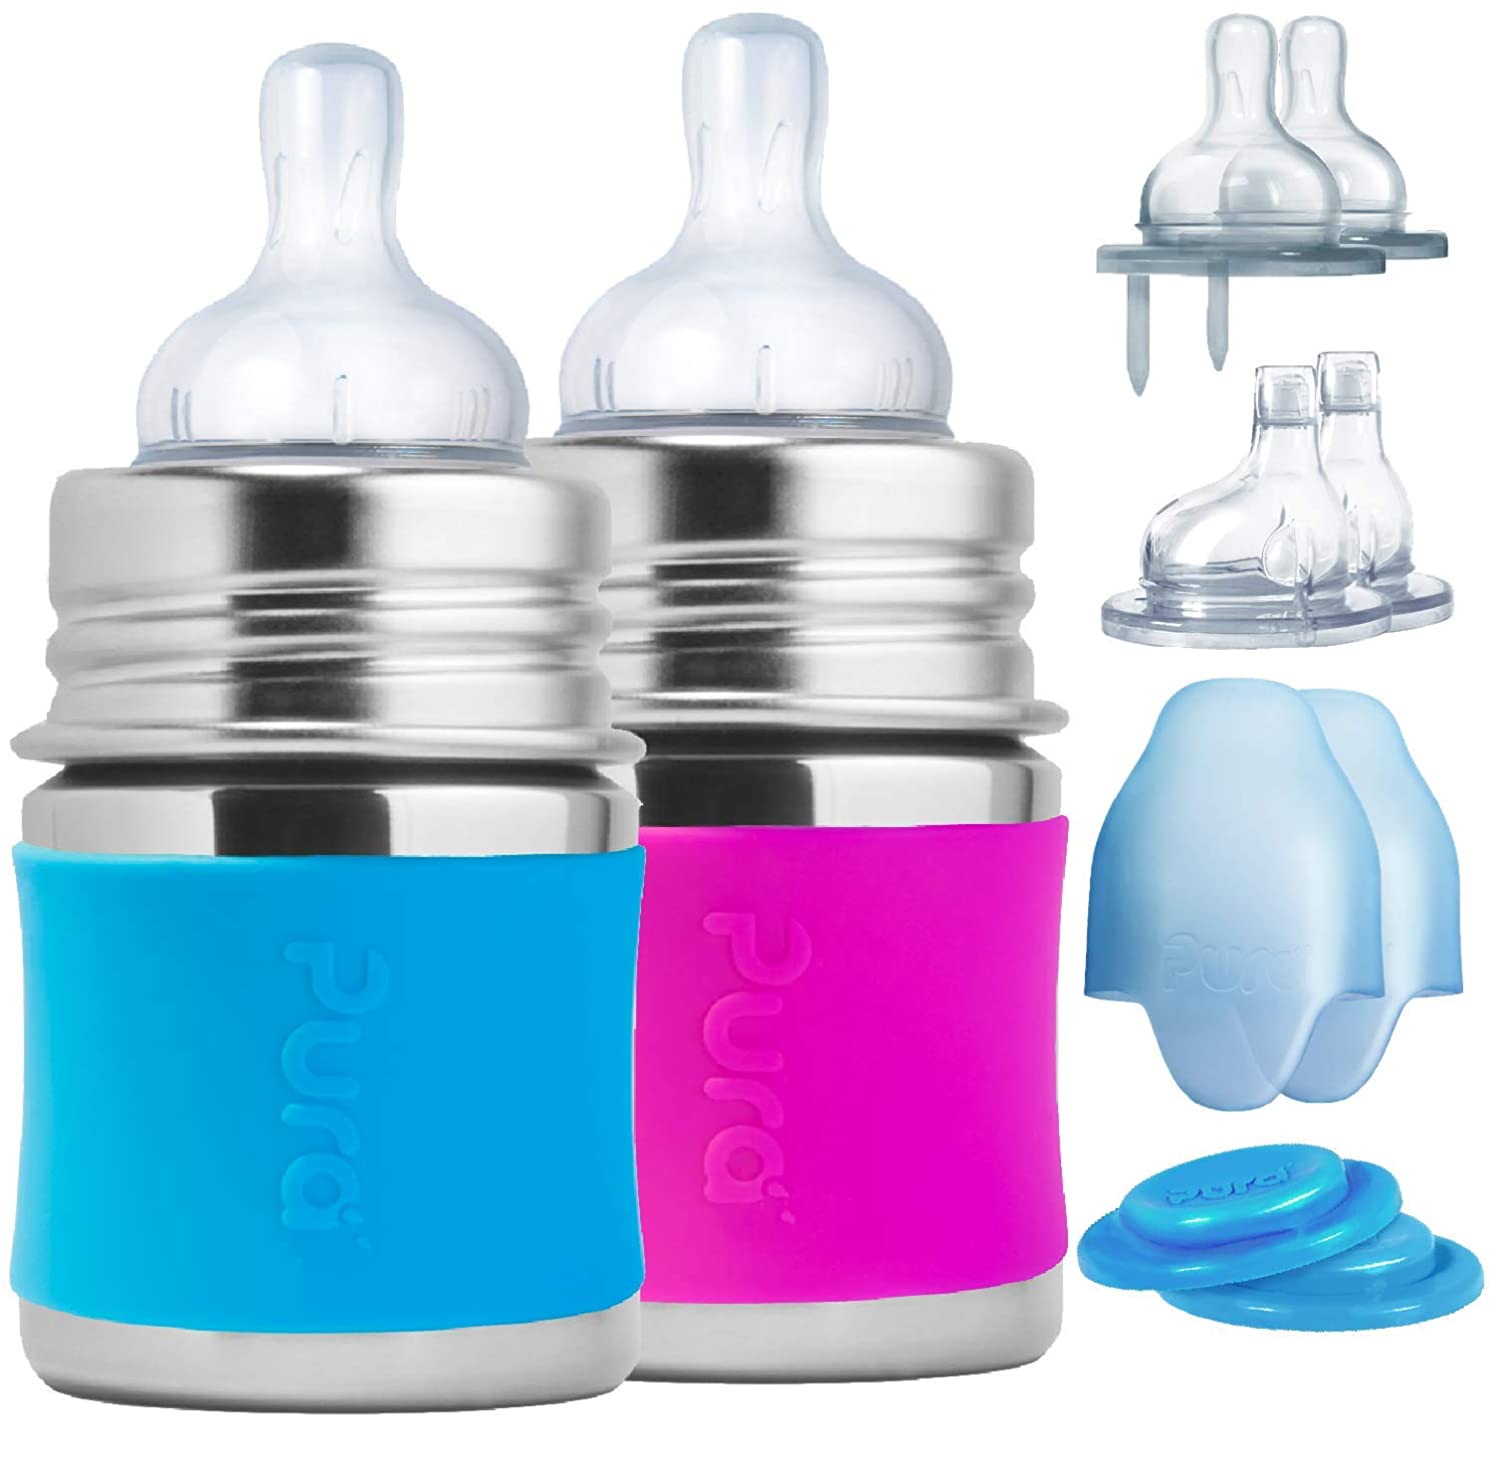 Pura Stainless Starter Gift Set with 5oz/150 ml Stainless Steel Infant Bottles(2) Silicone Slow-Flow Nipples(2), Medium-Flow Nipples(2), XL Sipper Spouts(2) Sealing Disks(2), Sleeves(2)- Aq&Pnk